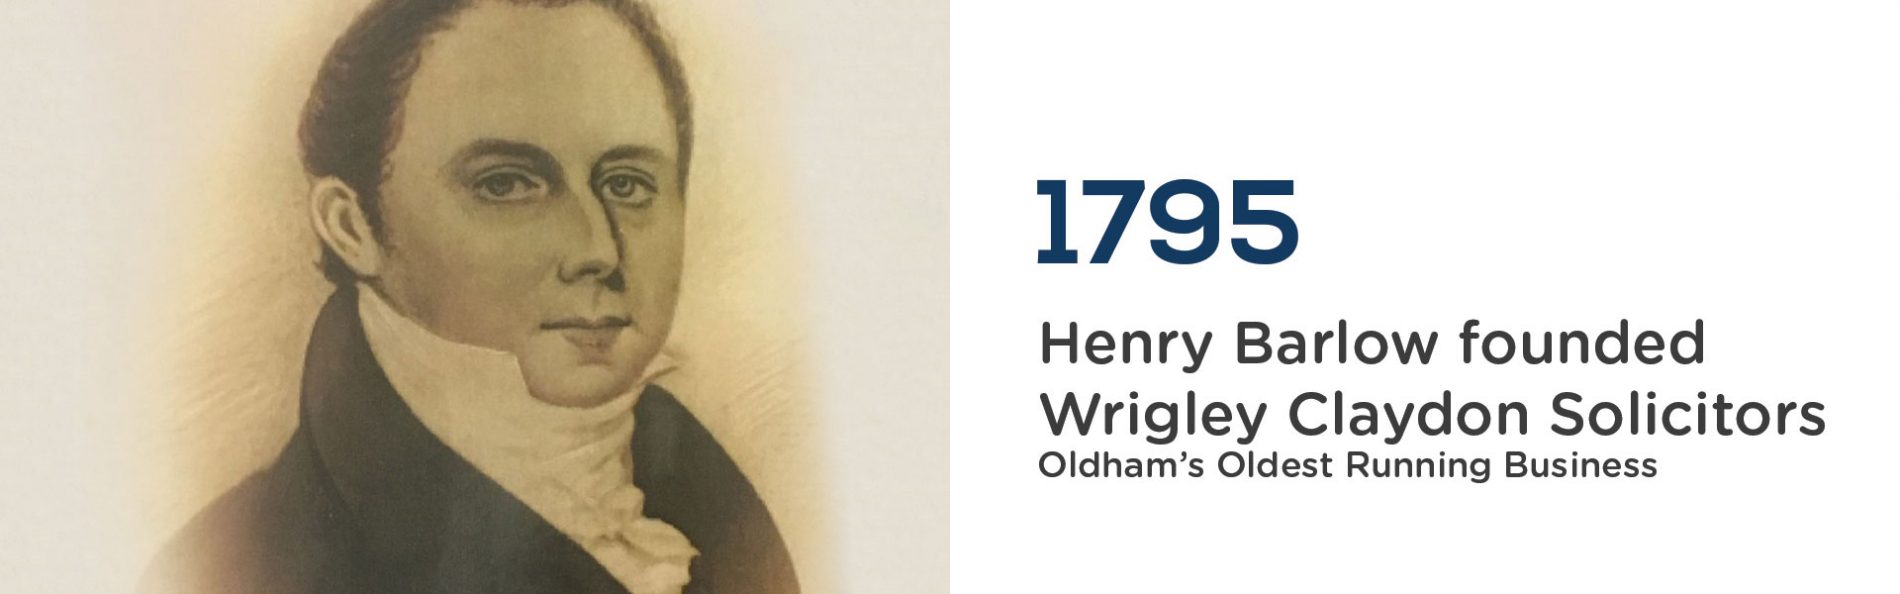 Henry Barlow founded Wrigley Claydon Solicitors in 1795